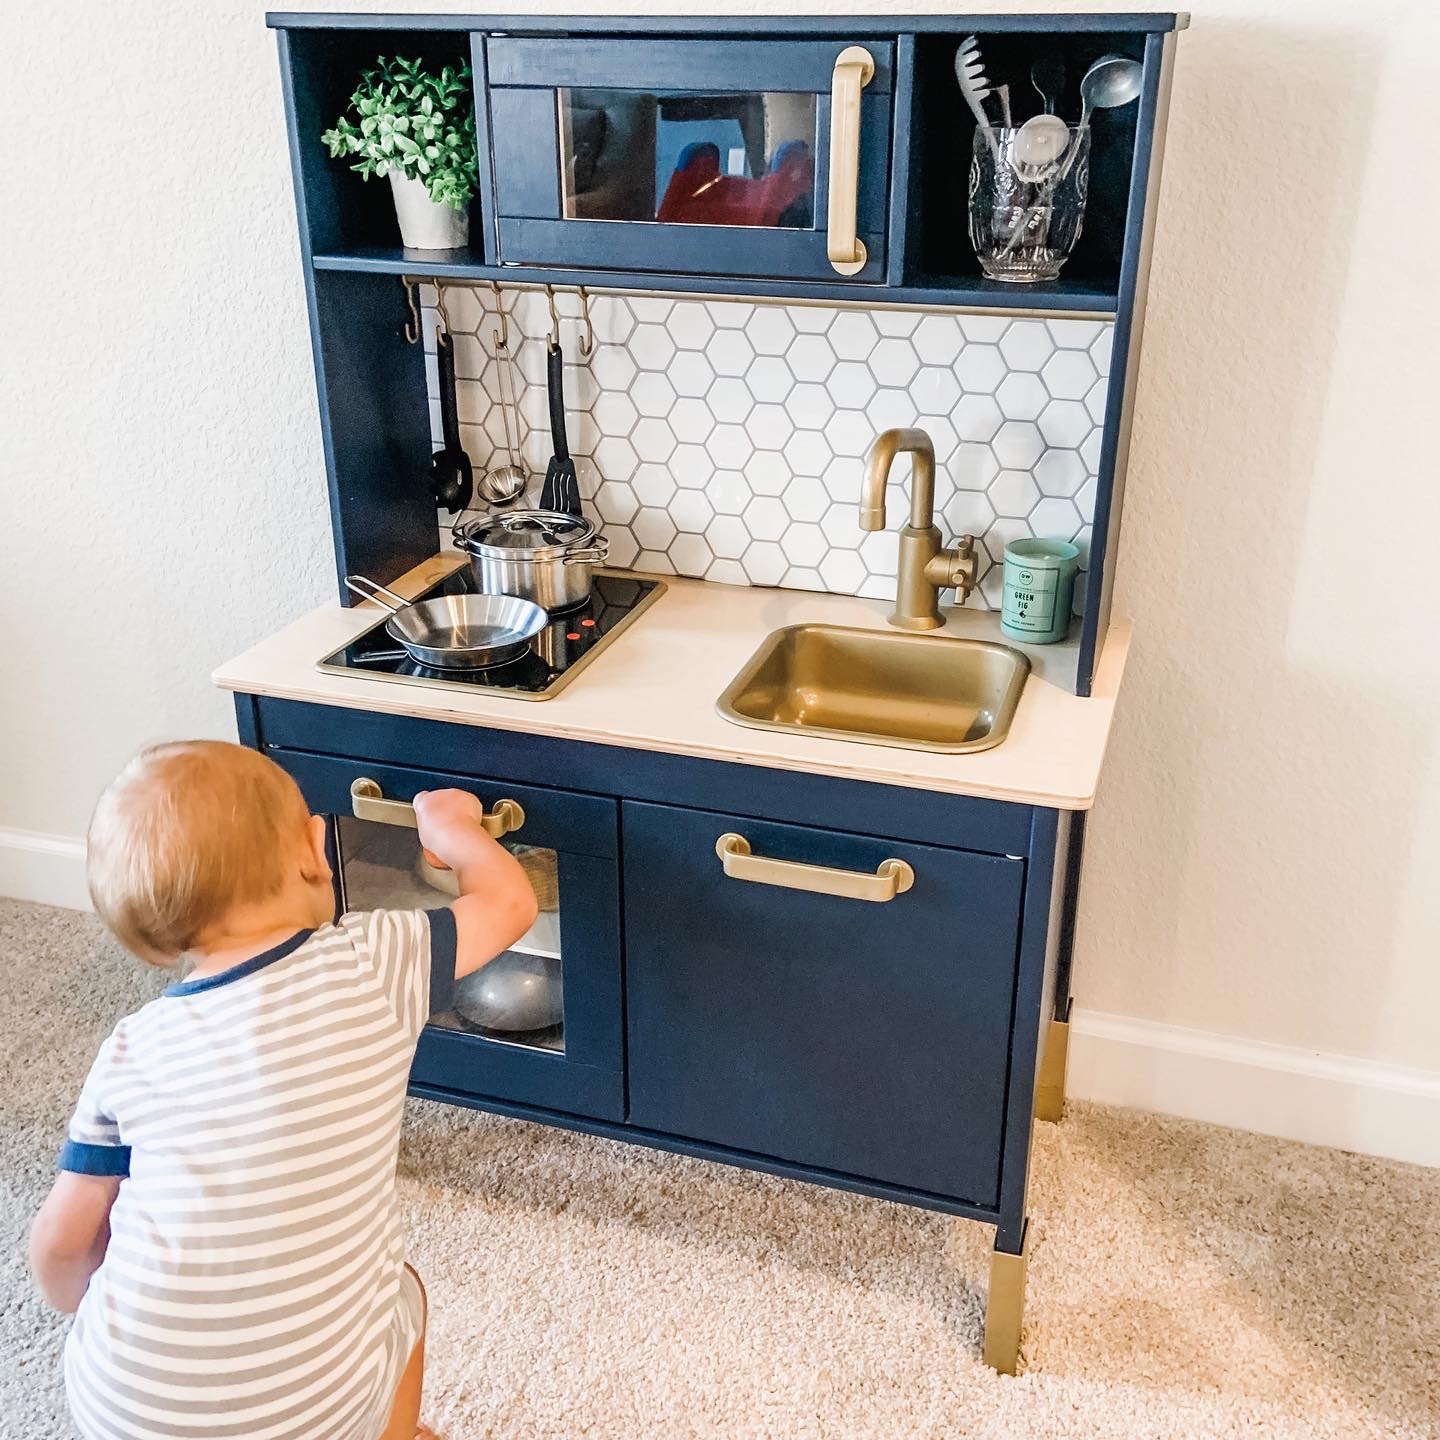 adorable is this play kitchen!? My one year old son has